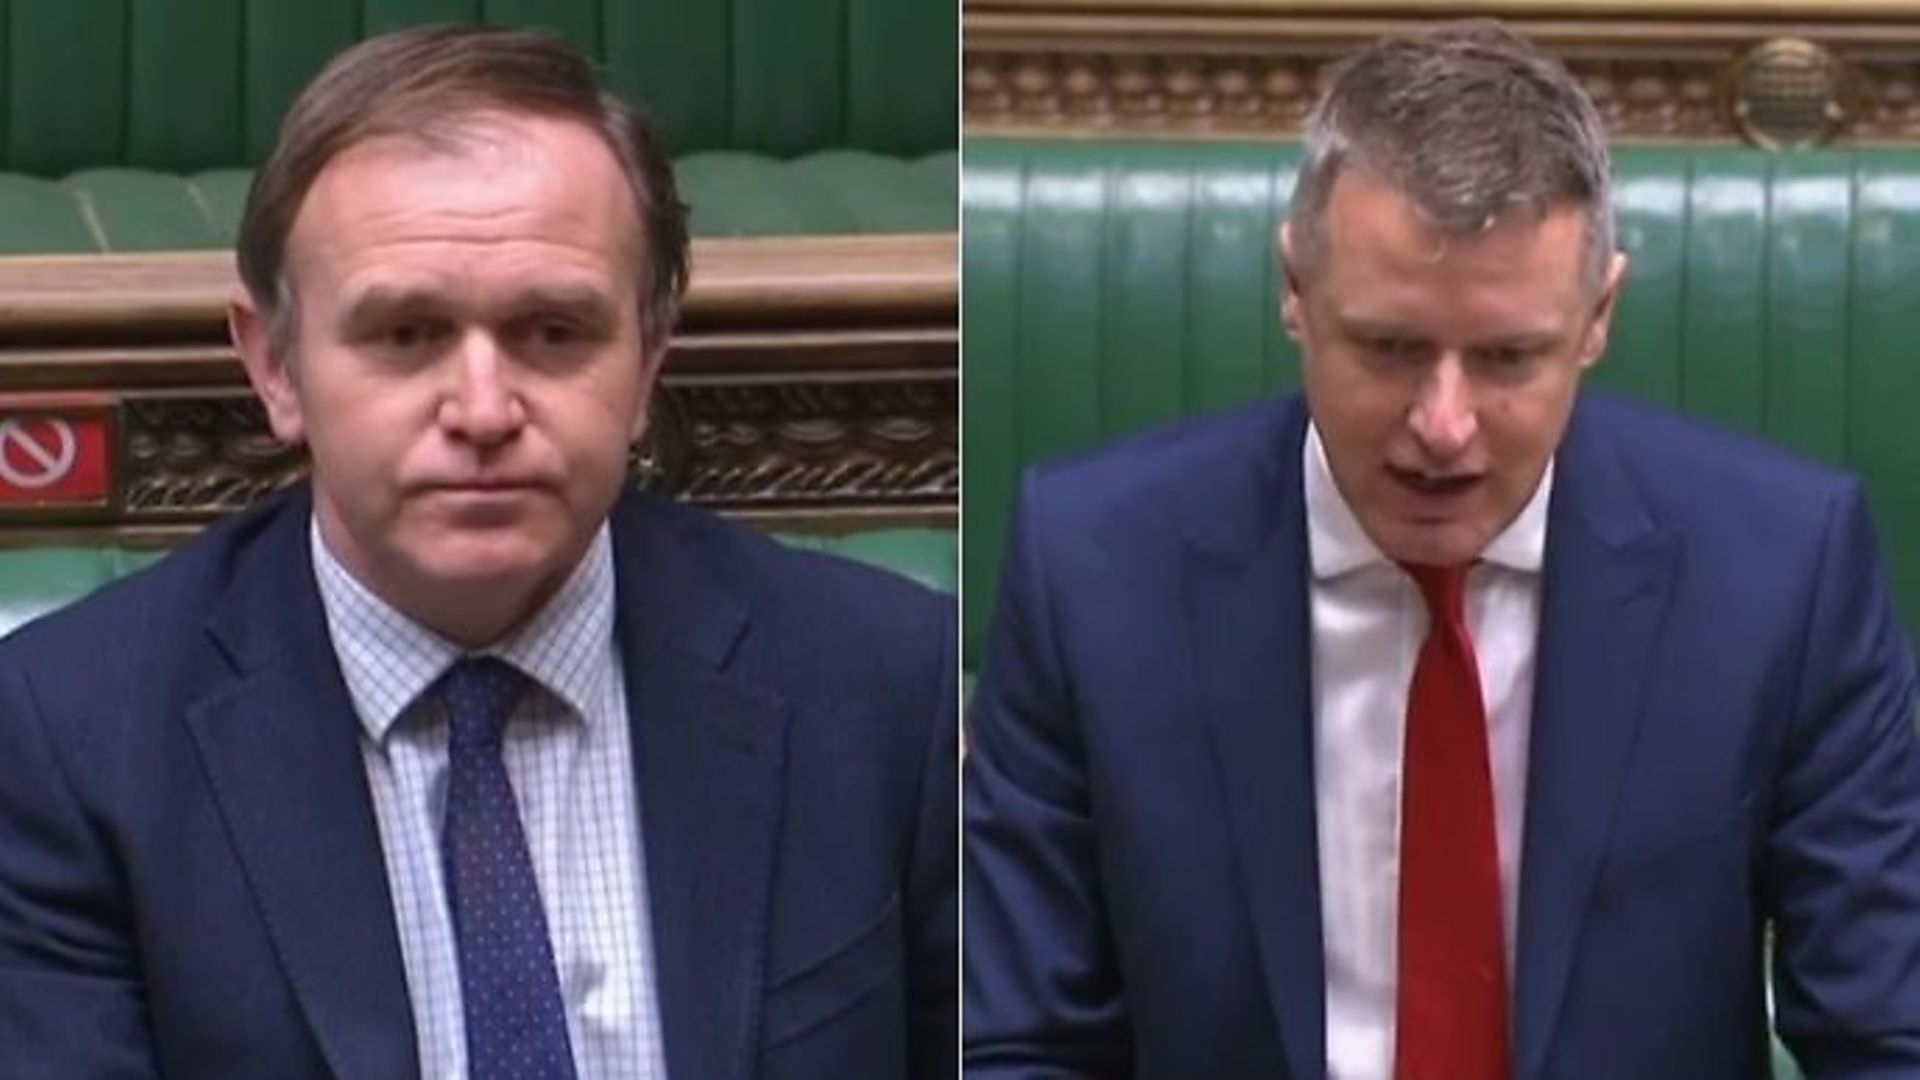 Environment secretary George Eustice (L) and Labour's Luke Pollard in the House of Commons - Credit: Parliamentlive.tv